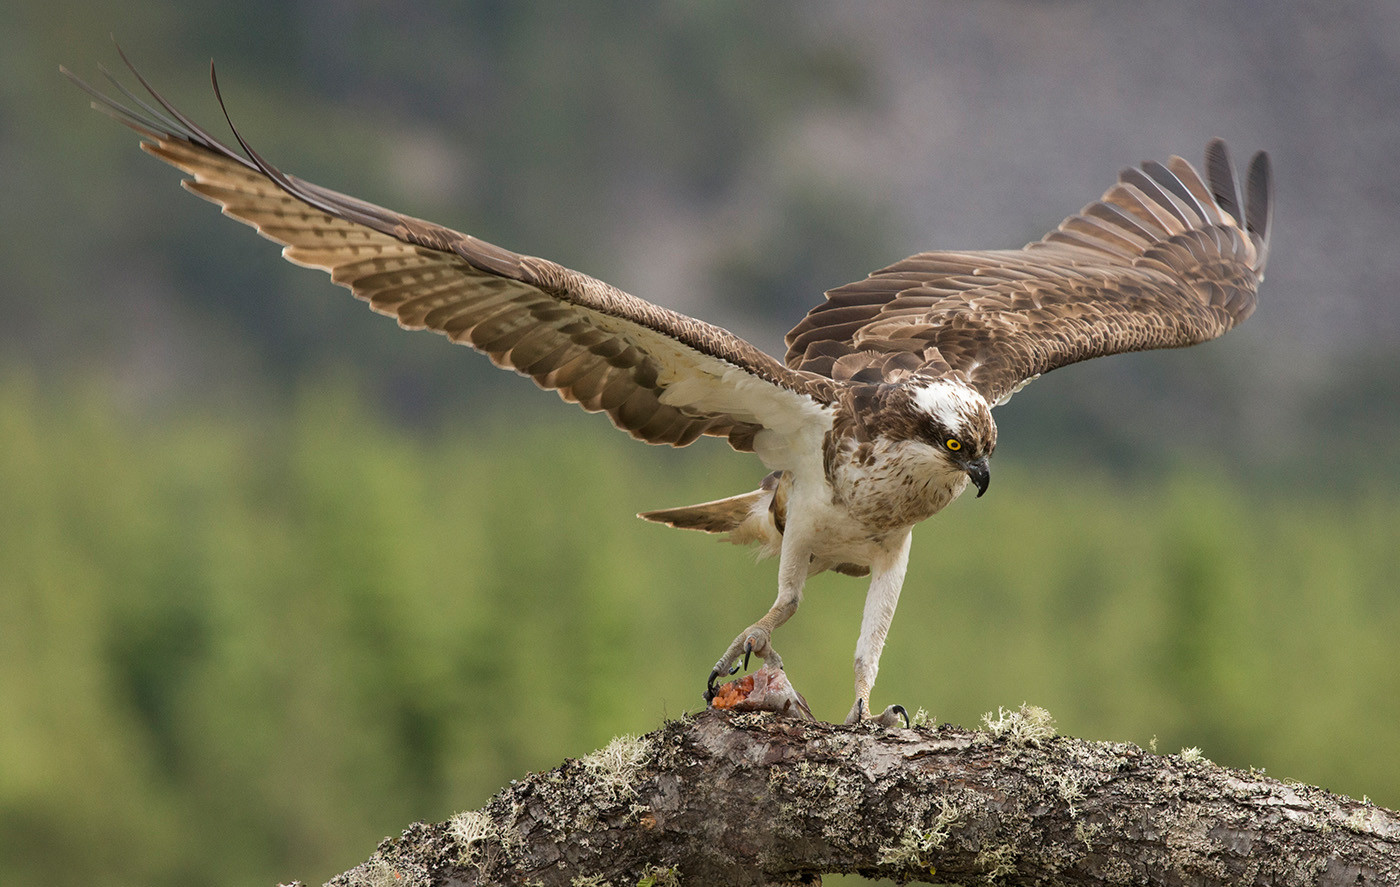 18 OSPREY FINISHING CATCH by John Hunt